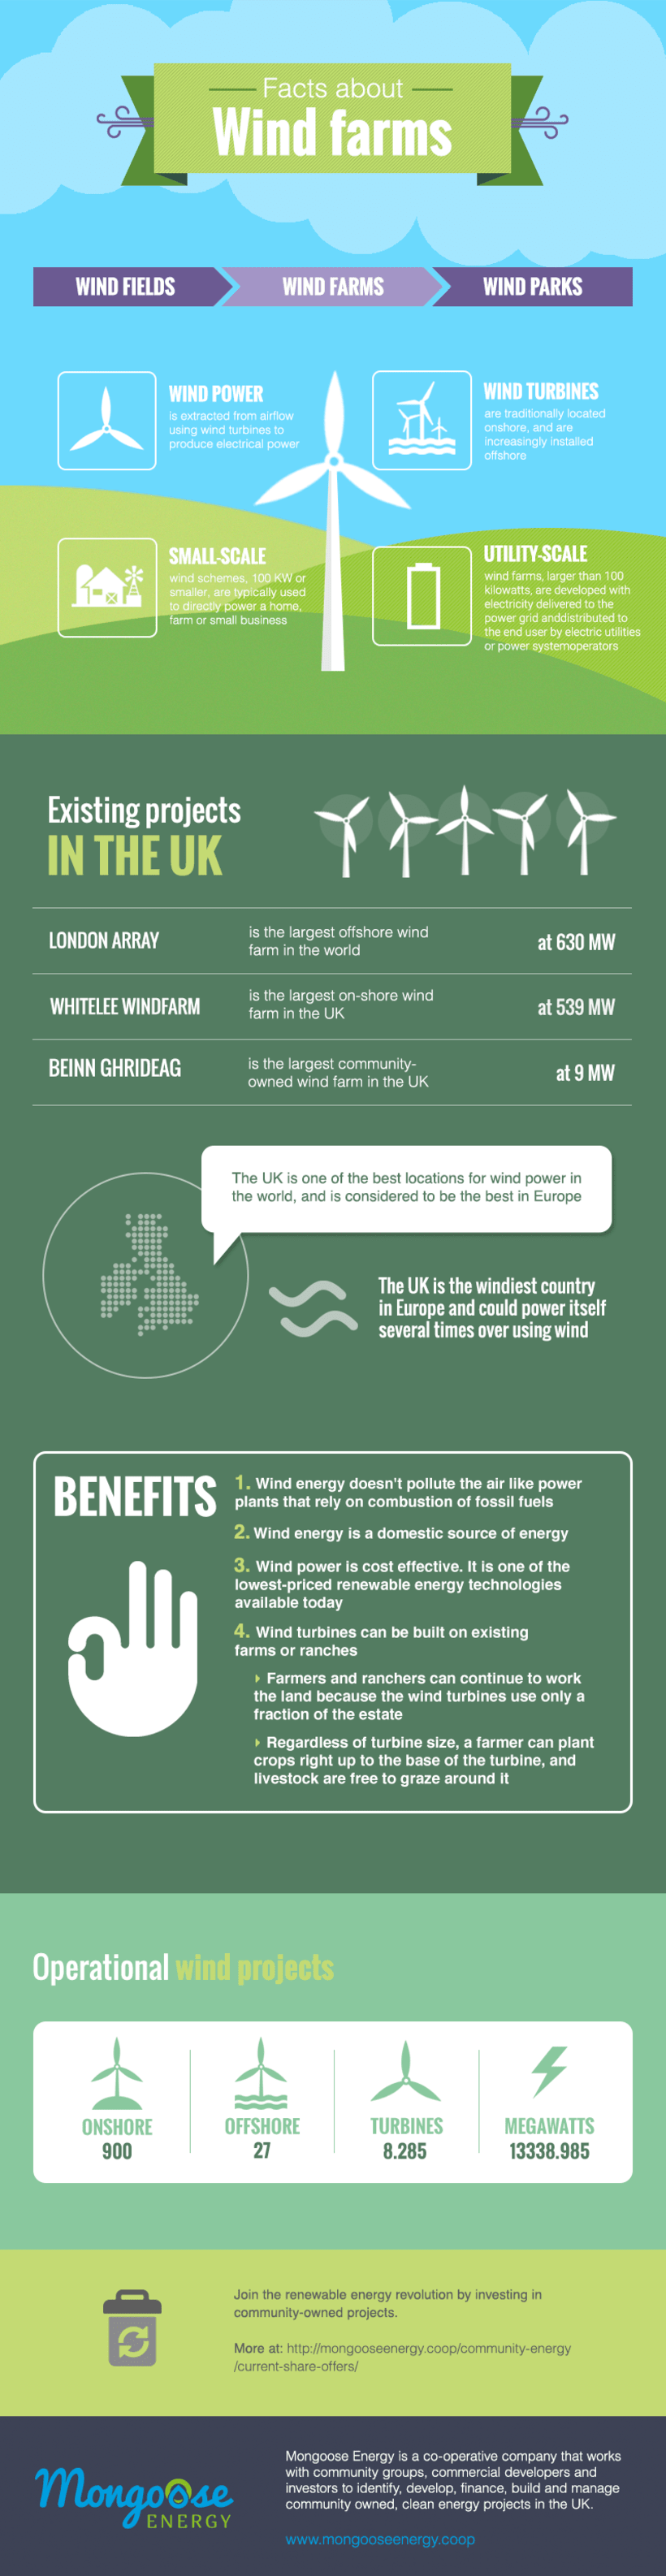 "Diseño de infografía: ""Facts about wind farms"" -1"